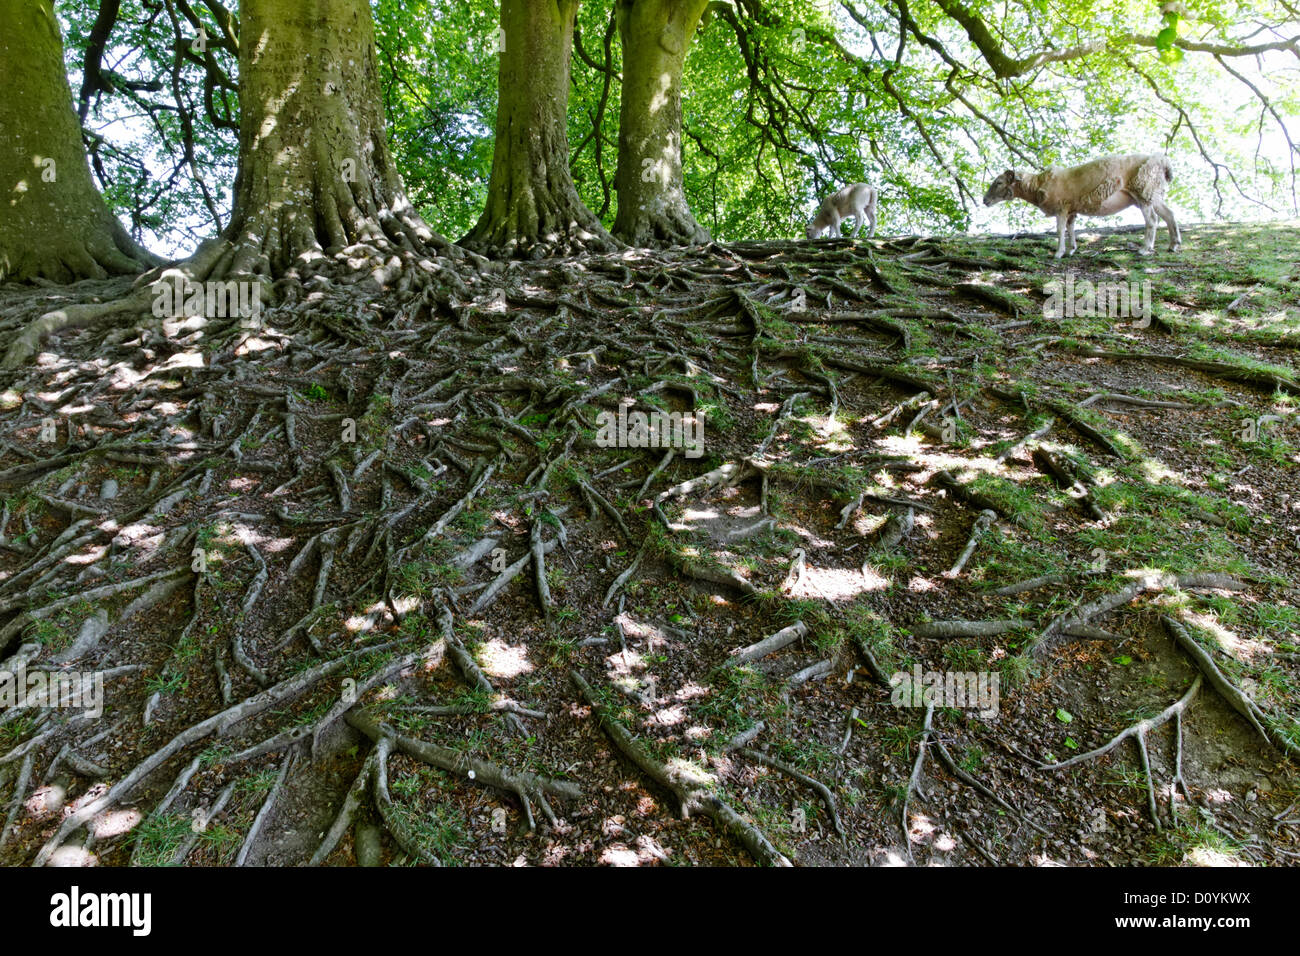 Exposed tree root system, Avebury, Wiltshire, England - Stock Image